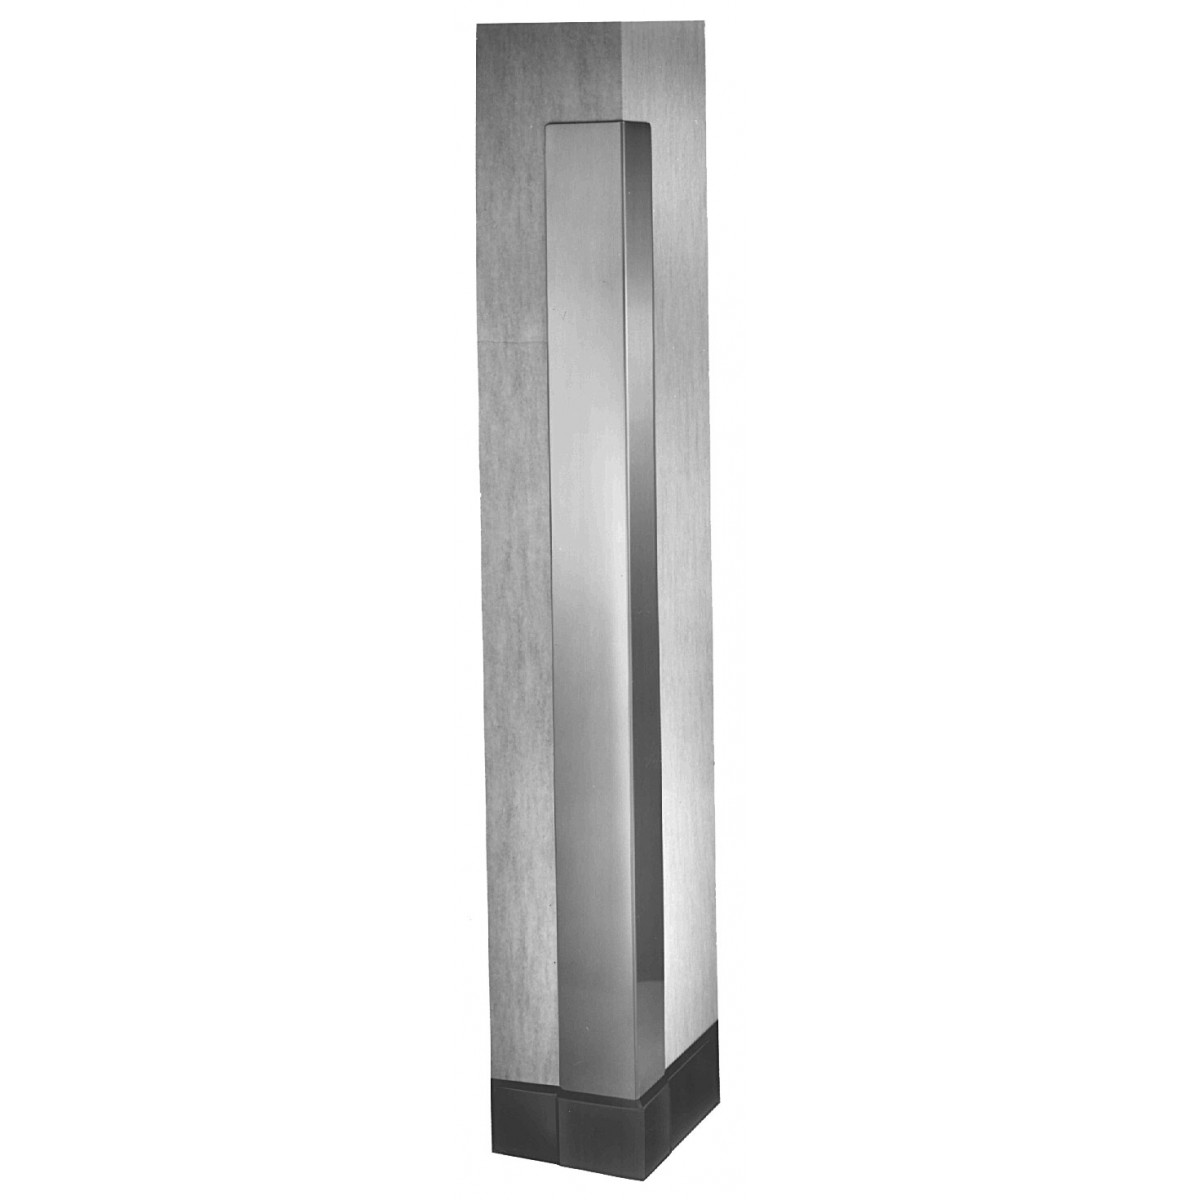 Bradley 991 Satin Stainless Steel Corner Guard - 48""